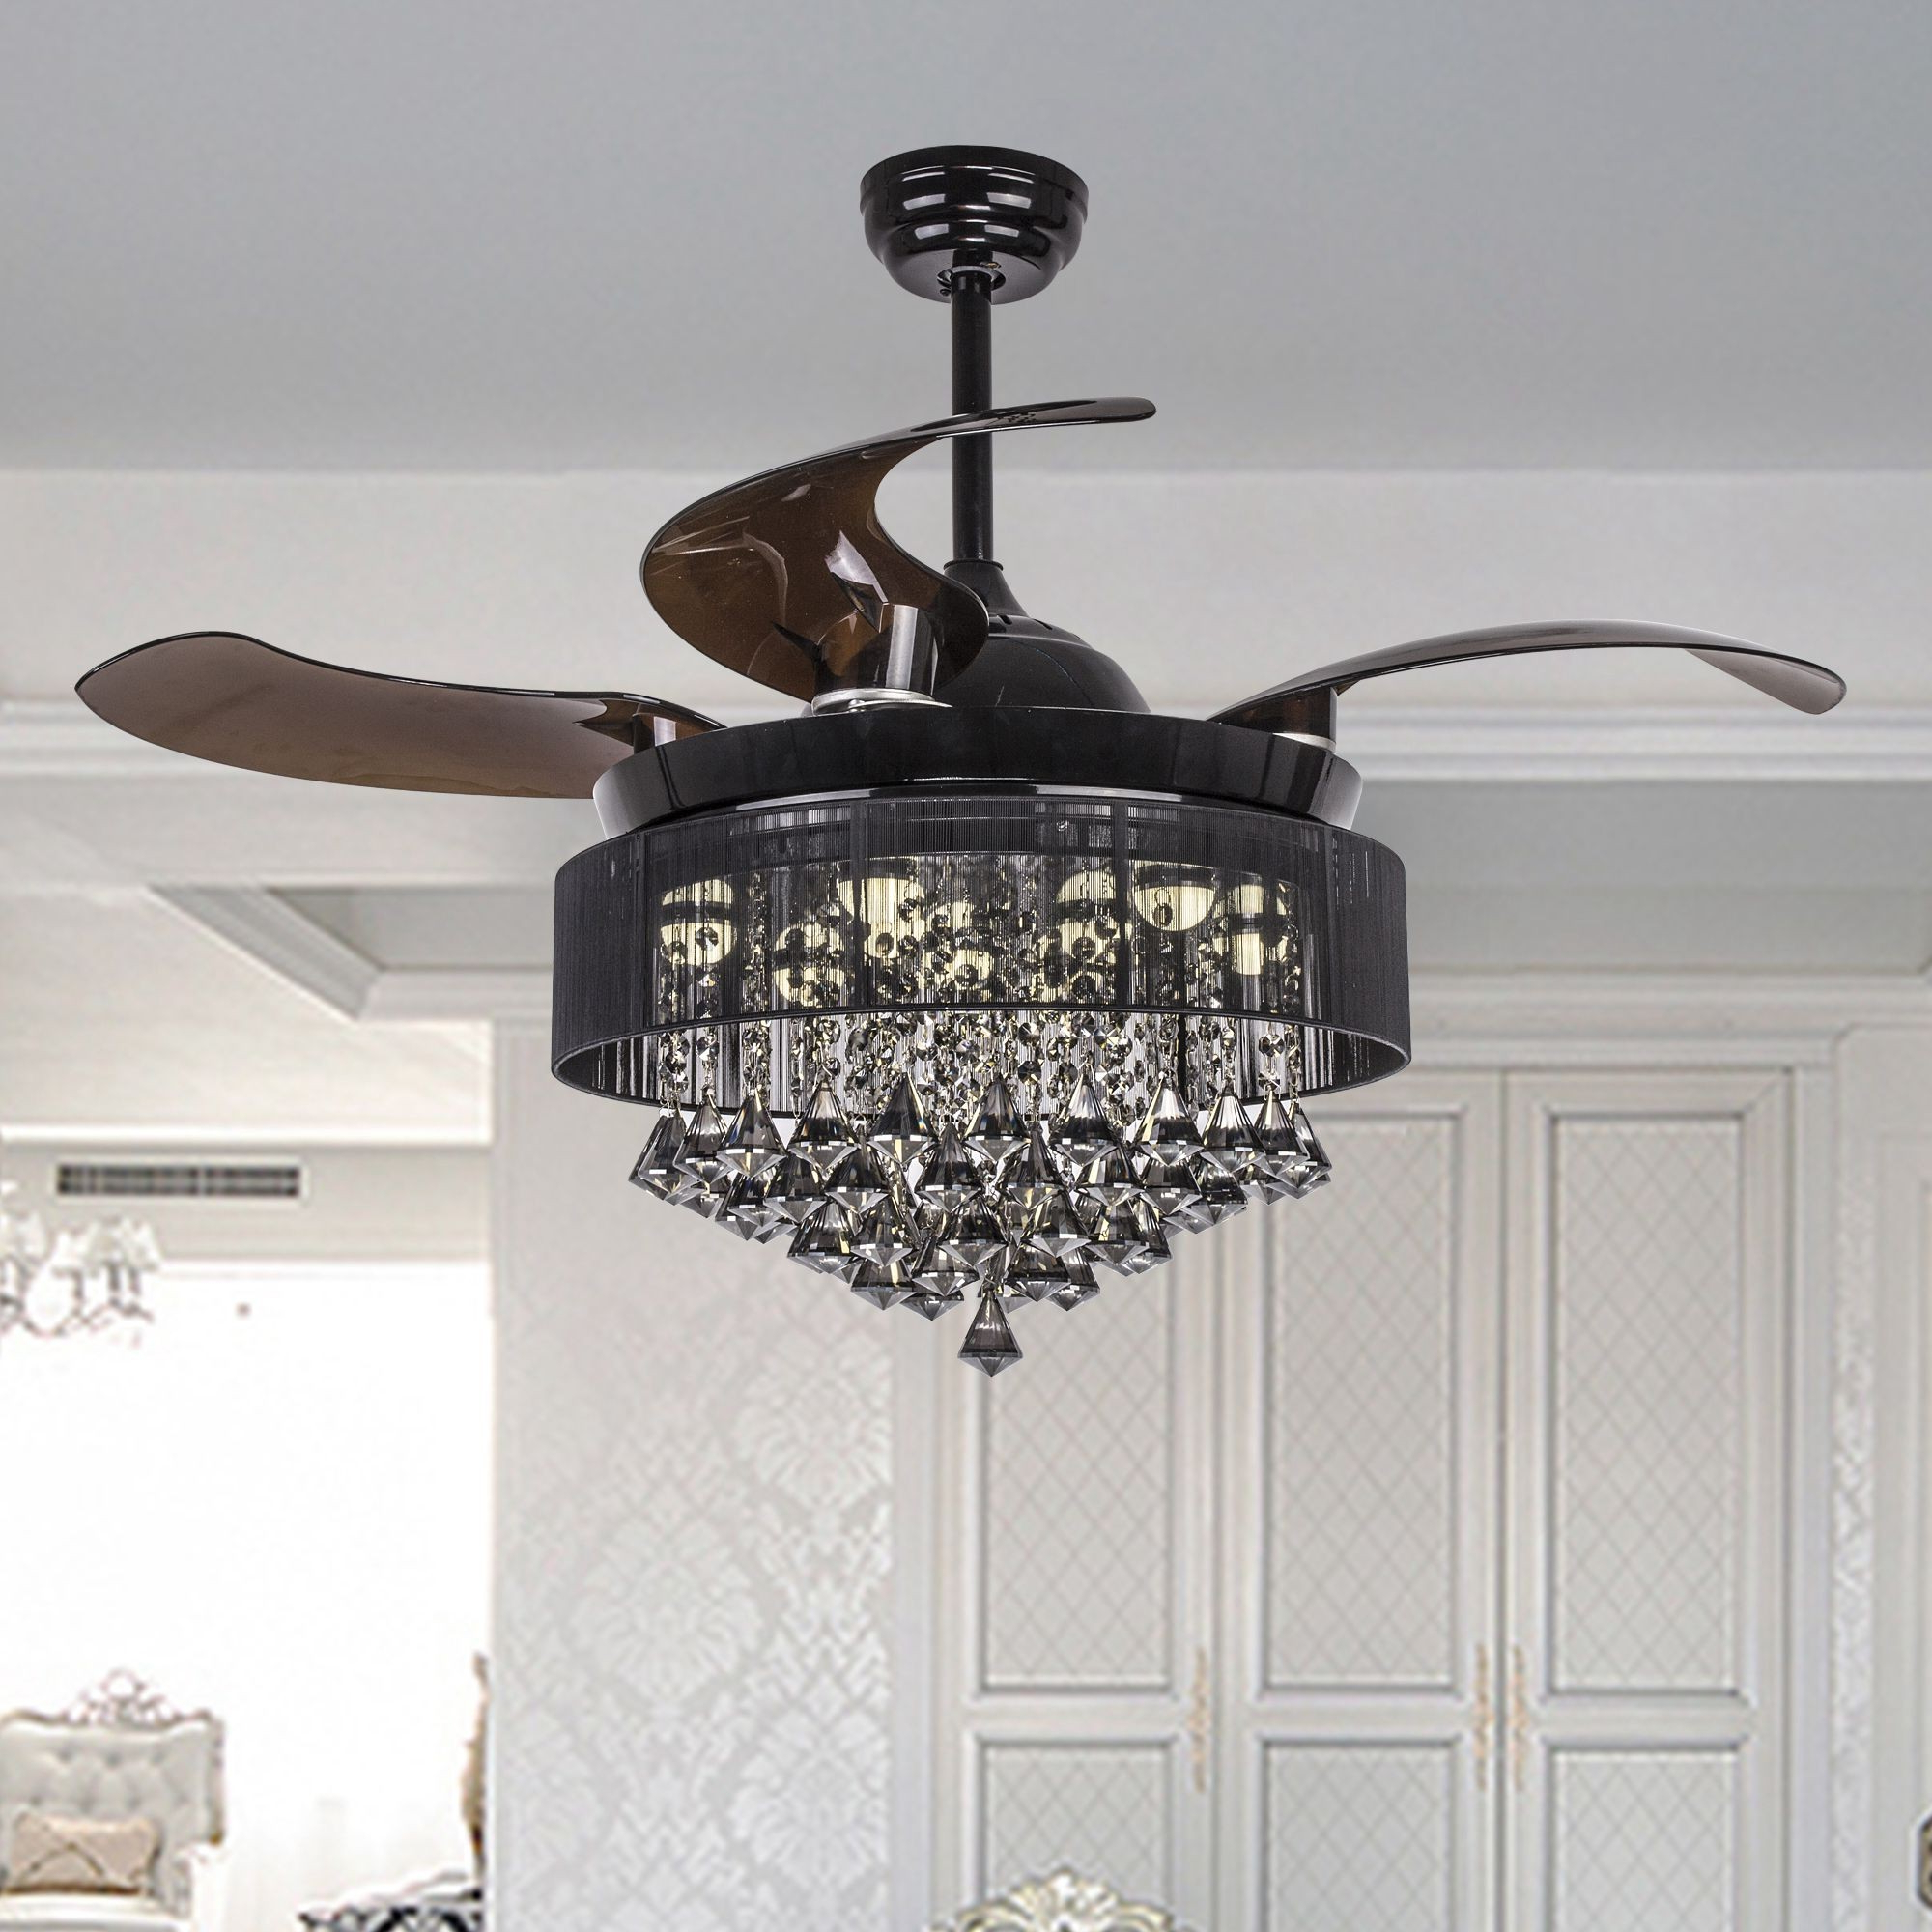 "Broxburne 4 Blade Led Ceiling Fans With Remote Inside Well Liked 46"" Broxburne Modern Crystal Retractable Ceiling Fan With Led Lights And Remote Control, Black (Gallery 2 of 20)"